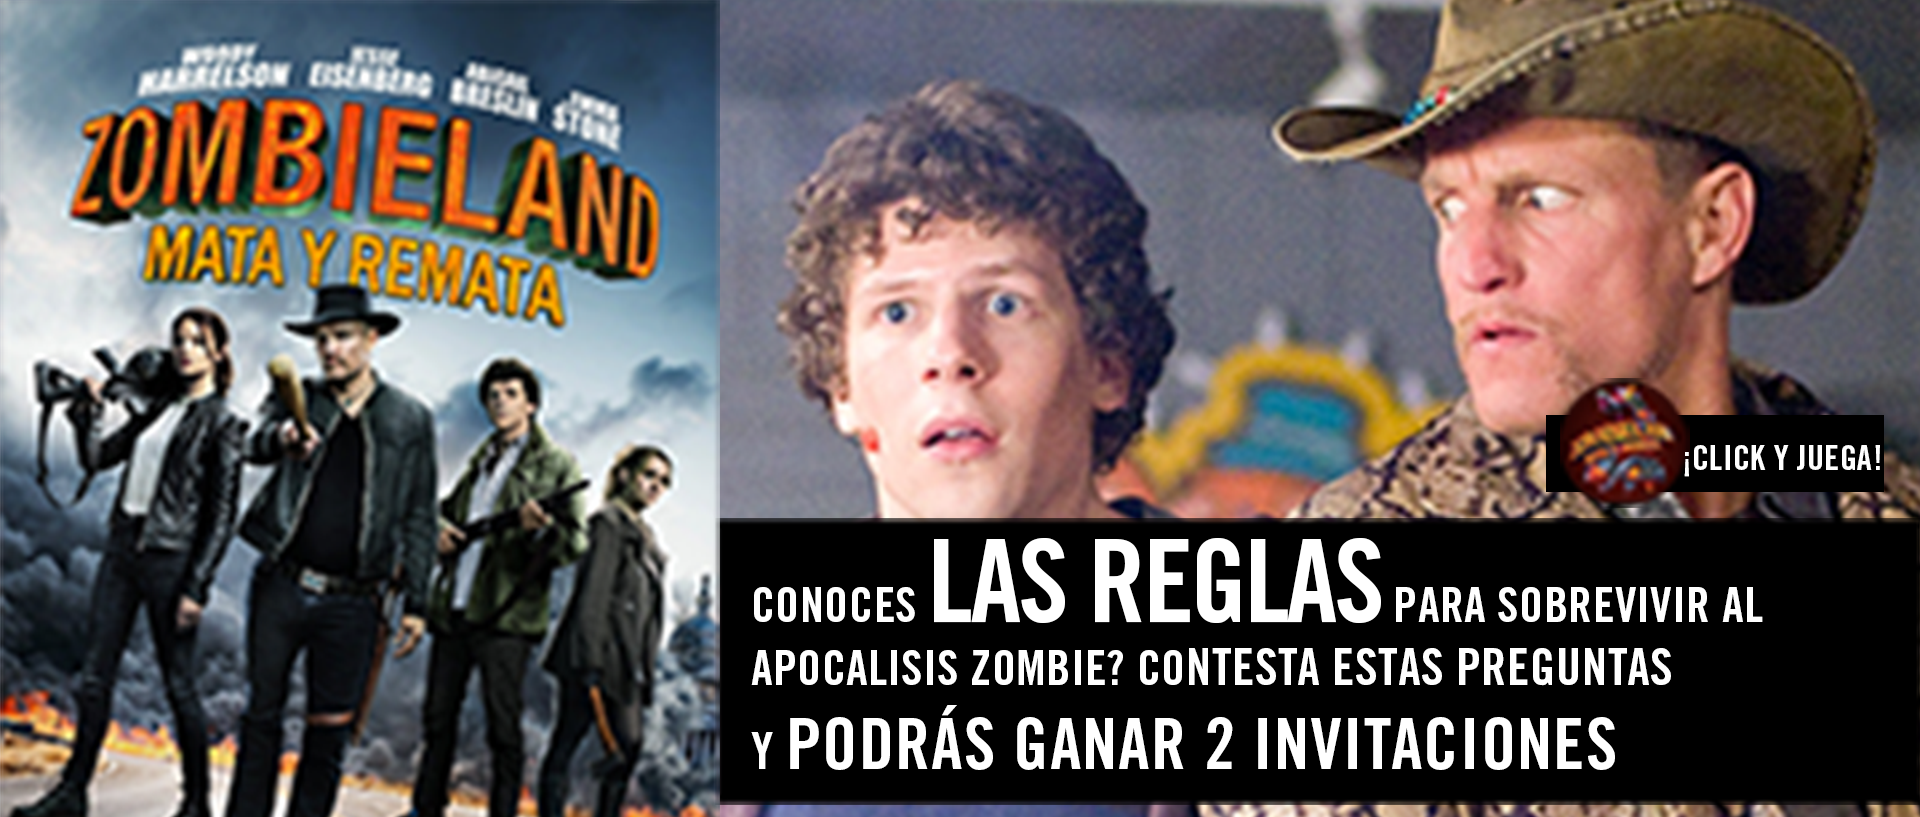 heras_ZombieLand1920x817.png